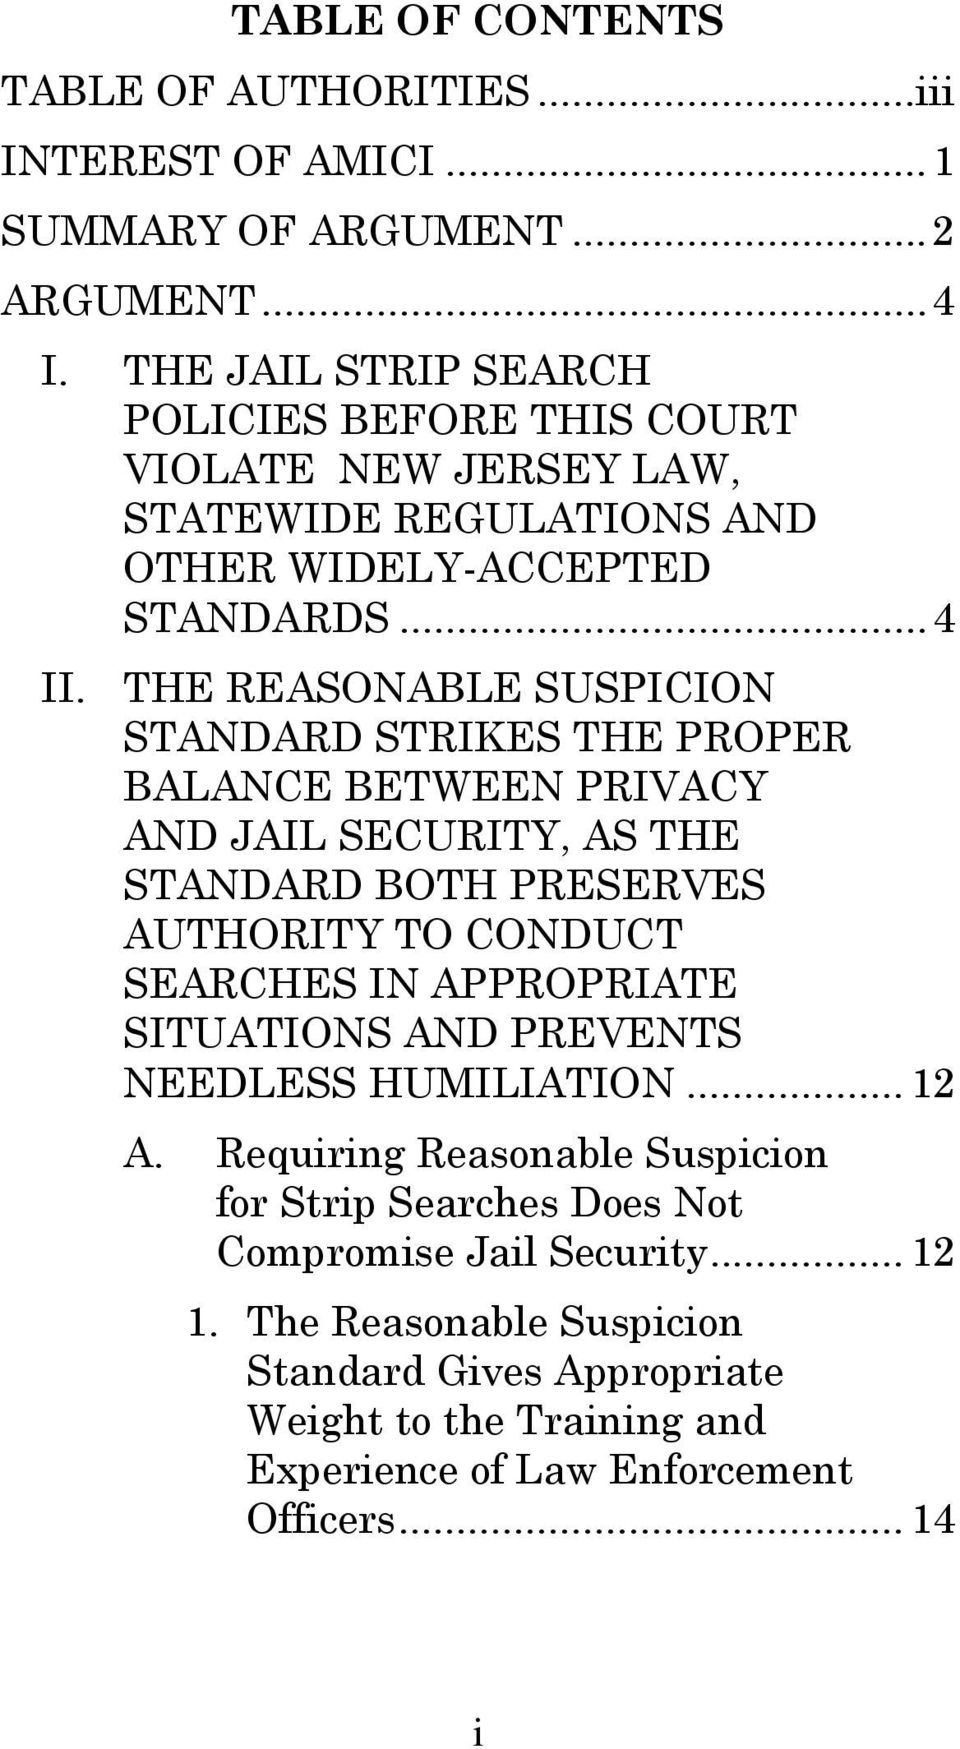 THE REASONABLE SUSPICION STANDARD STRIKES THE PROPER BALANCE BETWEEN PRIVACY AND JAIL SECURITY, AS THE STANDARD BOTH PRESERVES AUTHORITY TO CONDUCT SEARCHES IN APPROPRIATE